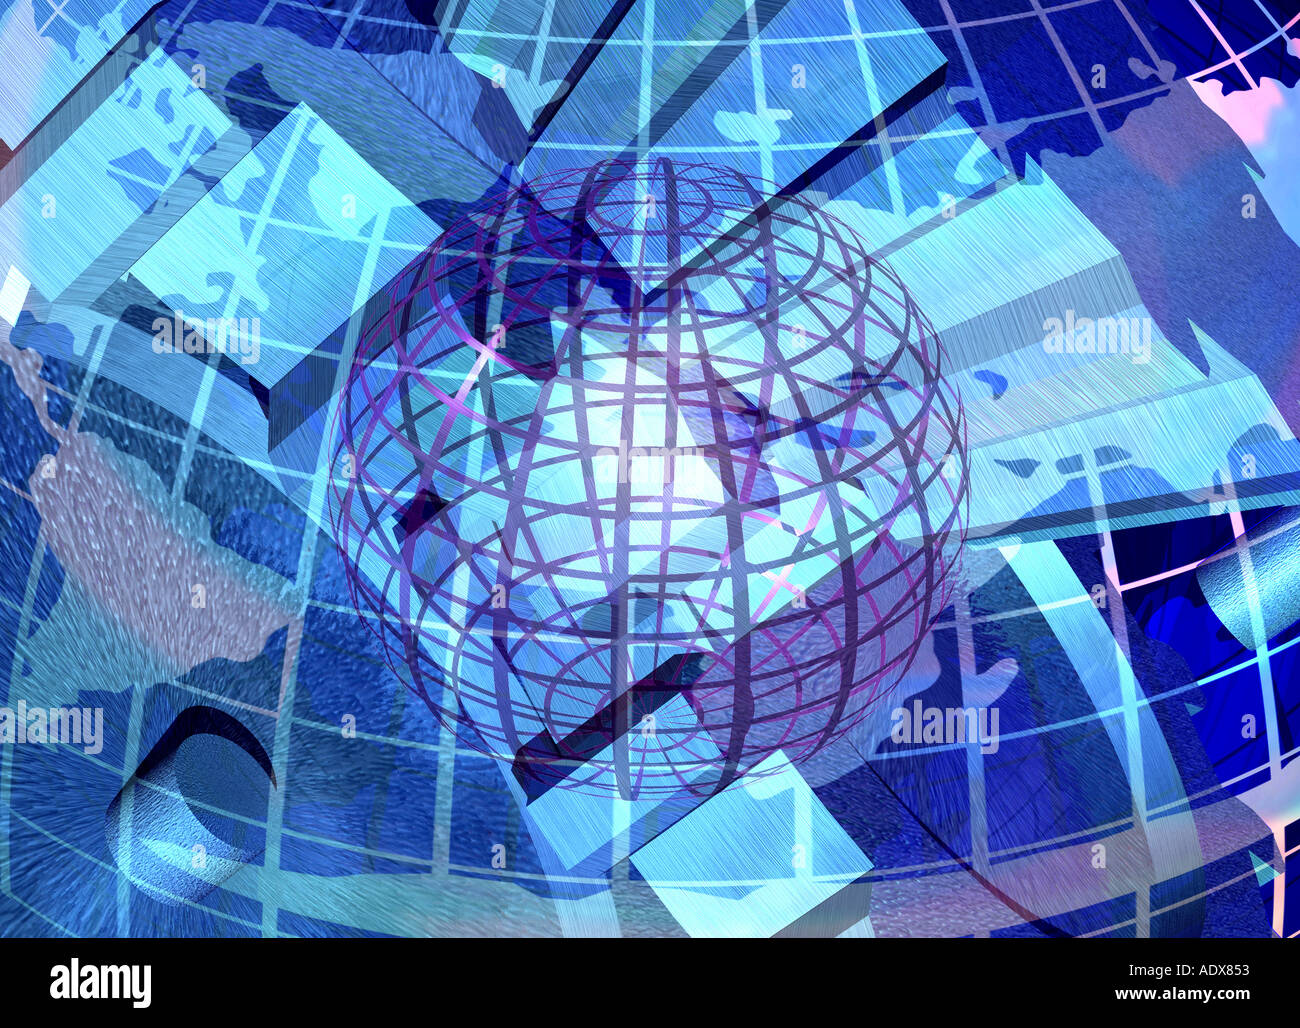 Illustrations www world wide web internet planet at frame tracks meridian map globe miscellaneous background texture - Stock Image